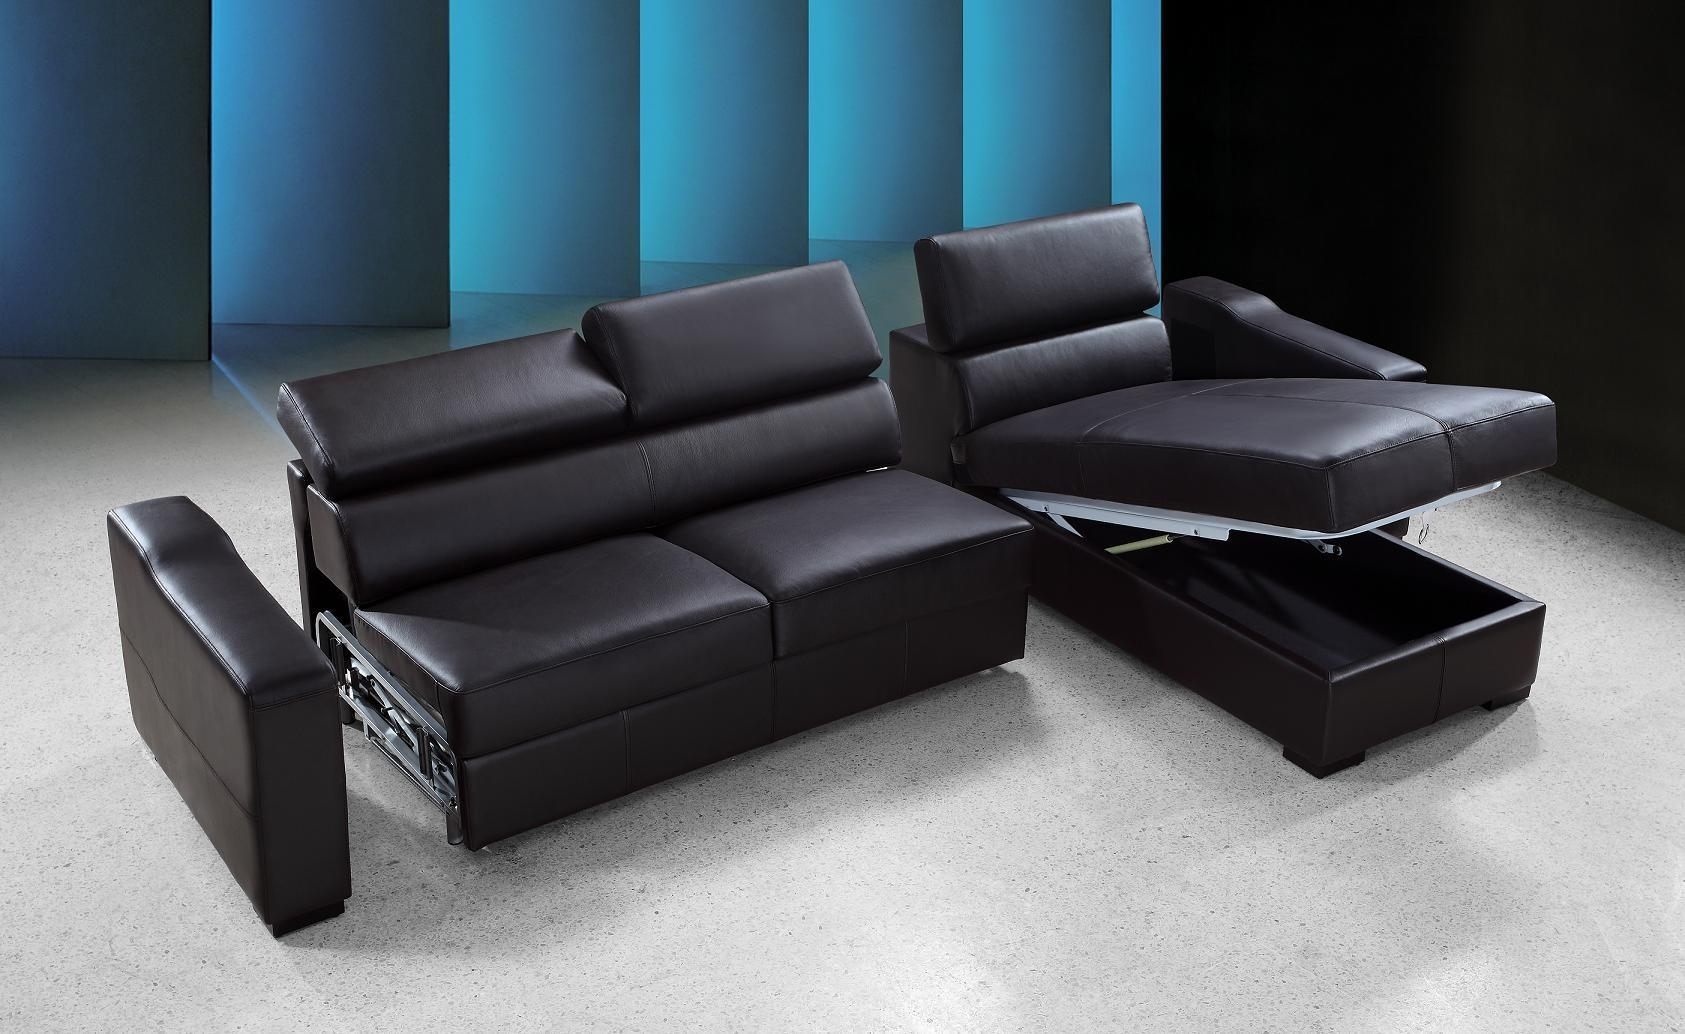 Flip Reversible Espresso Leather Sectional Sofa Bed W/ Storage Throughout Sofa Beds With Storage Chaise (View 20 of 20)